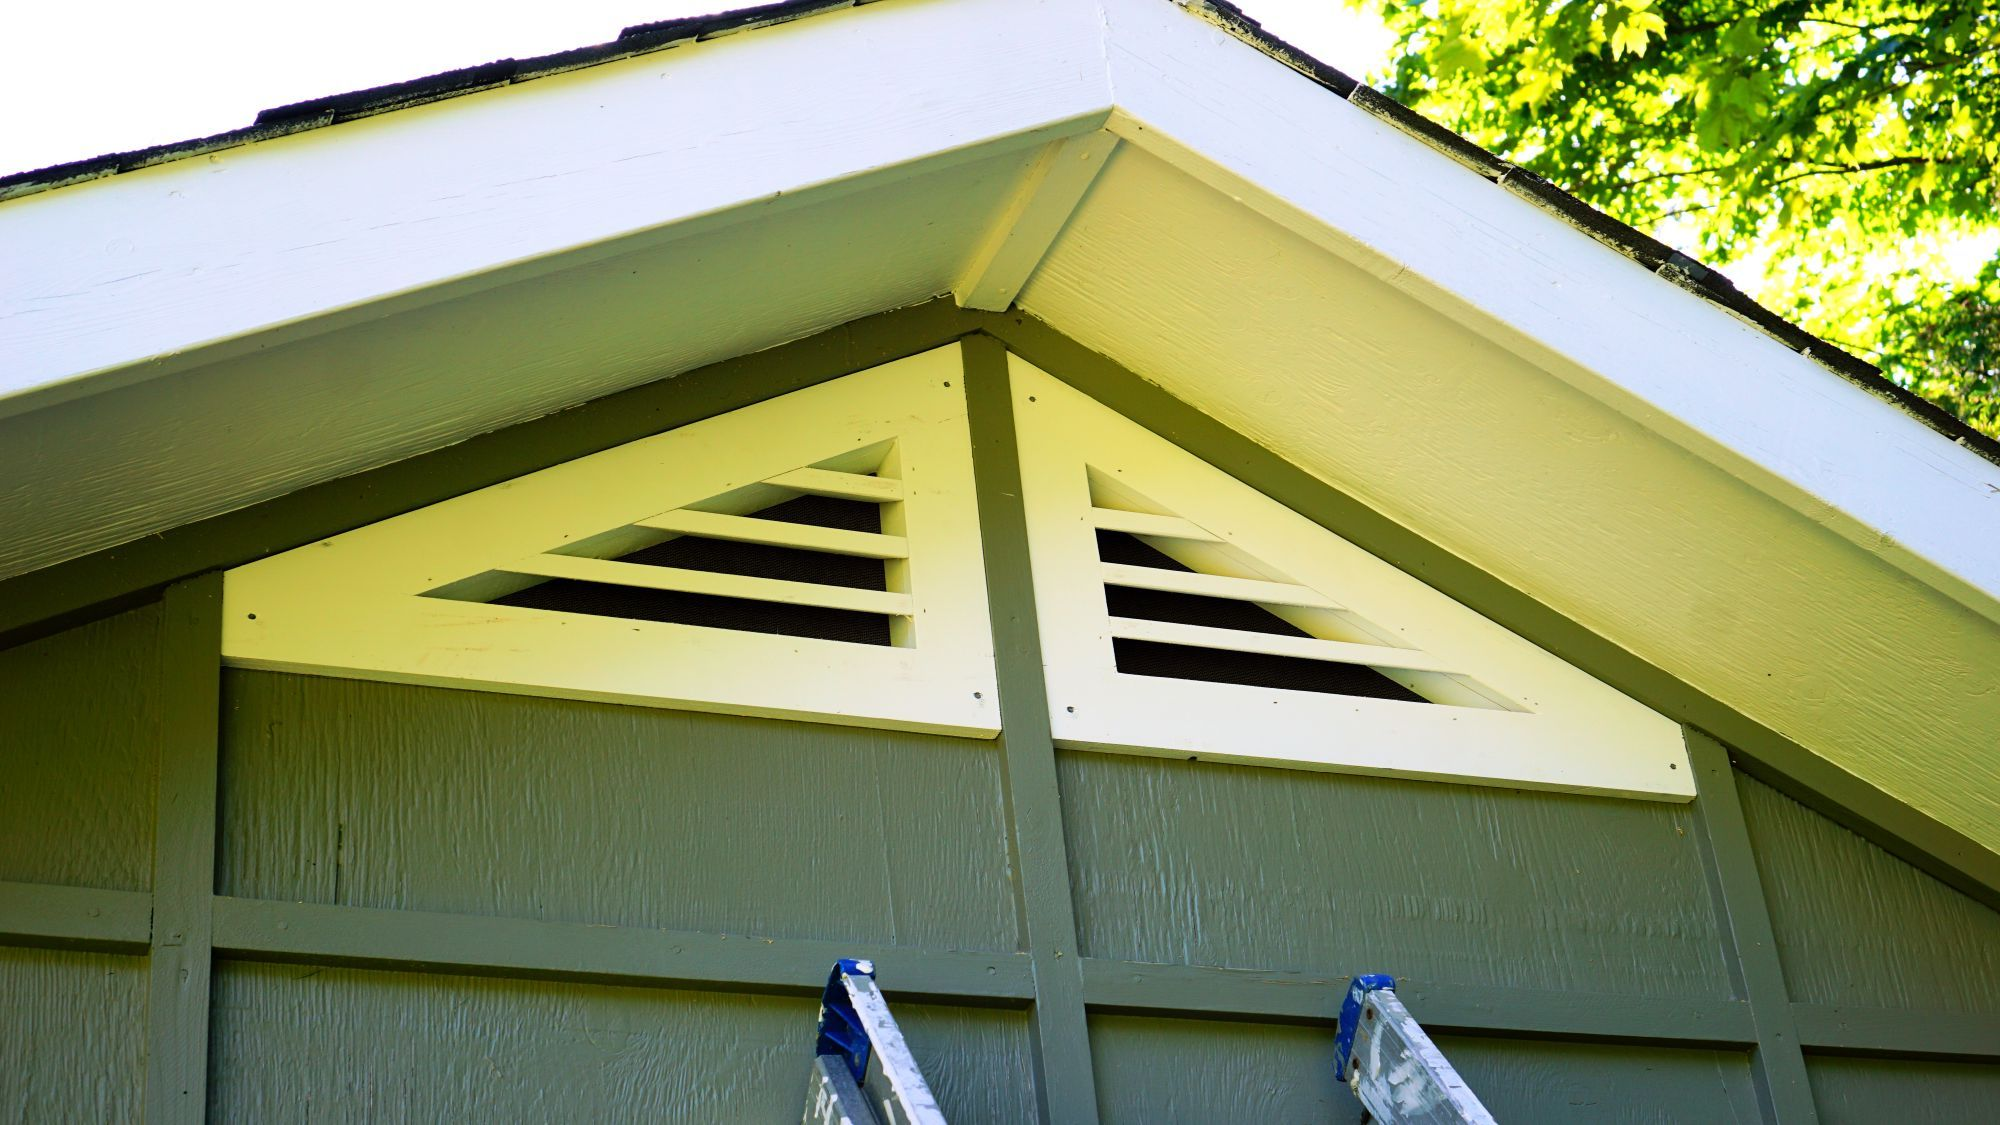 How To Make Triangular Gable Vents Ibuildit Ca